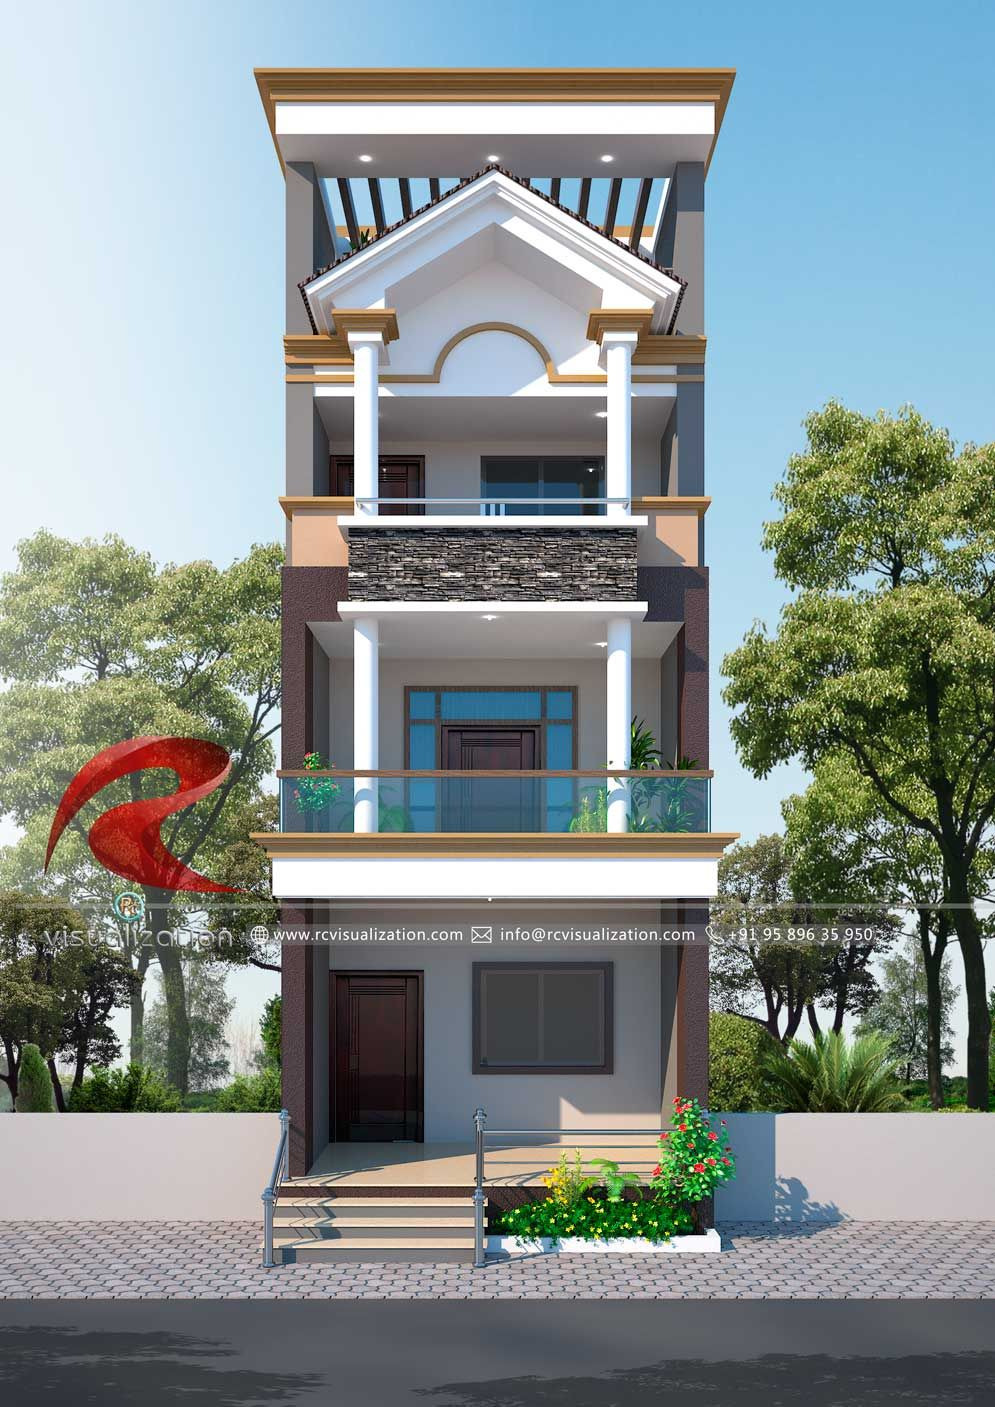 House Structure Design Ideas Lovely Idea by Landry Y On House Design